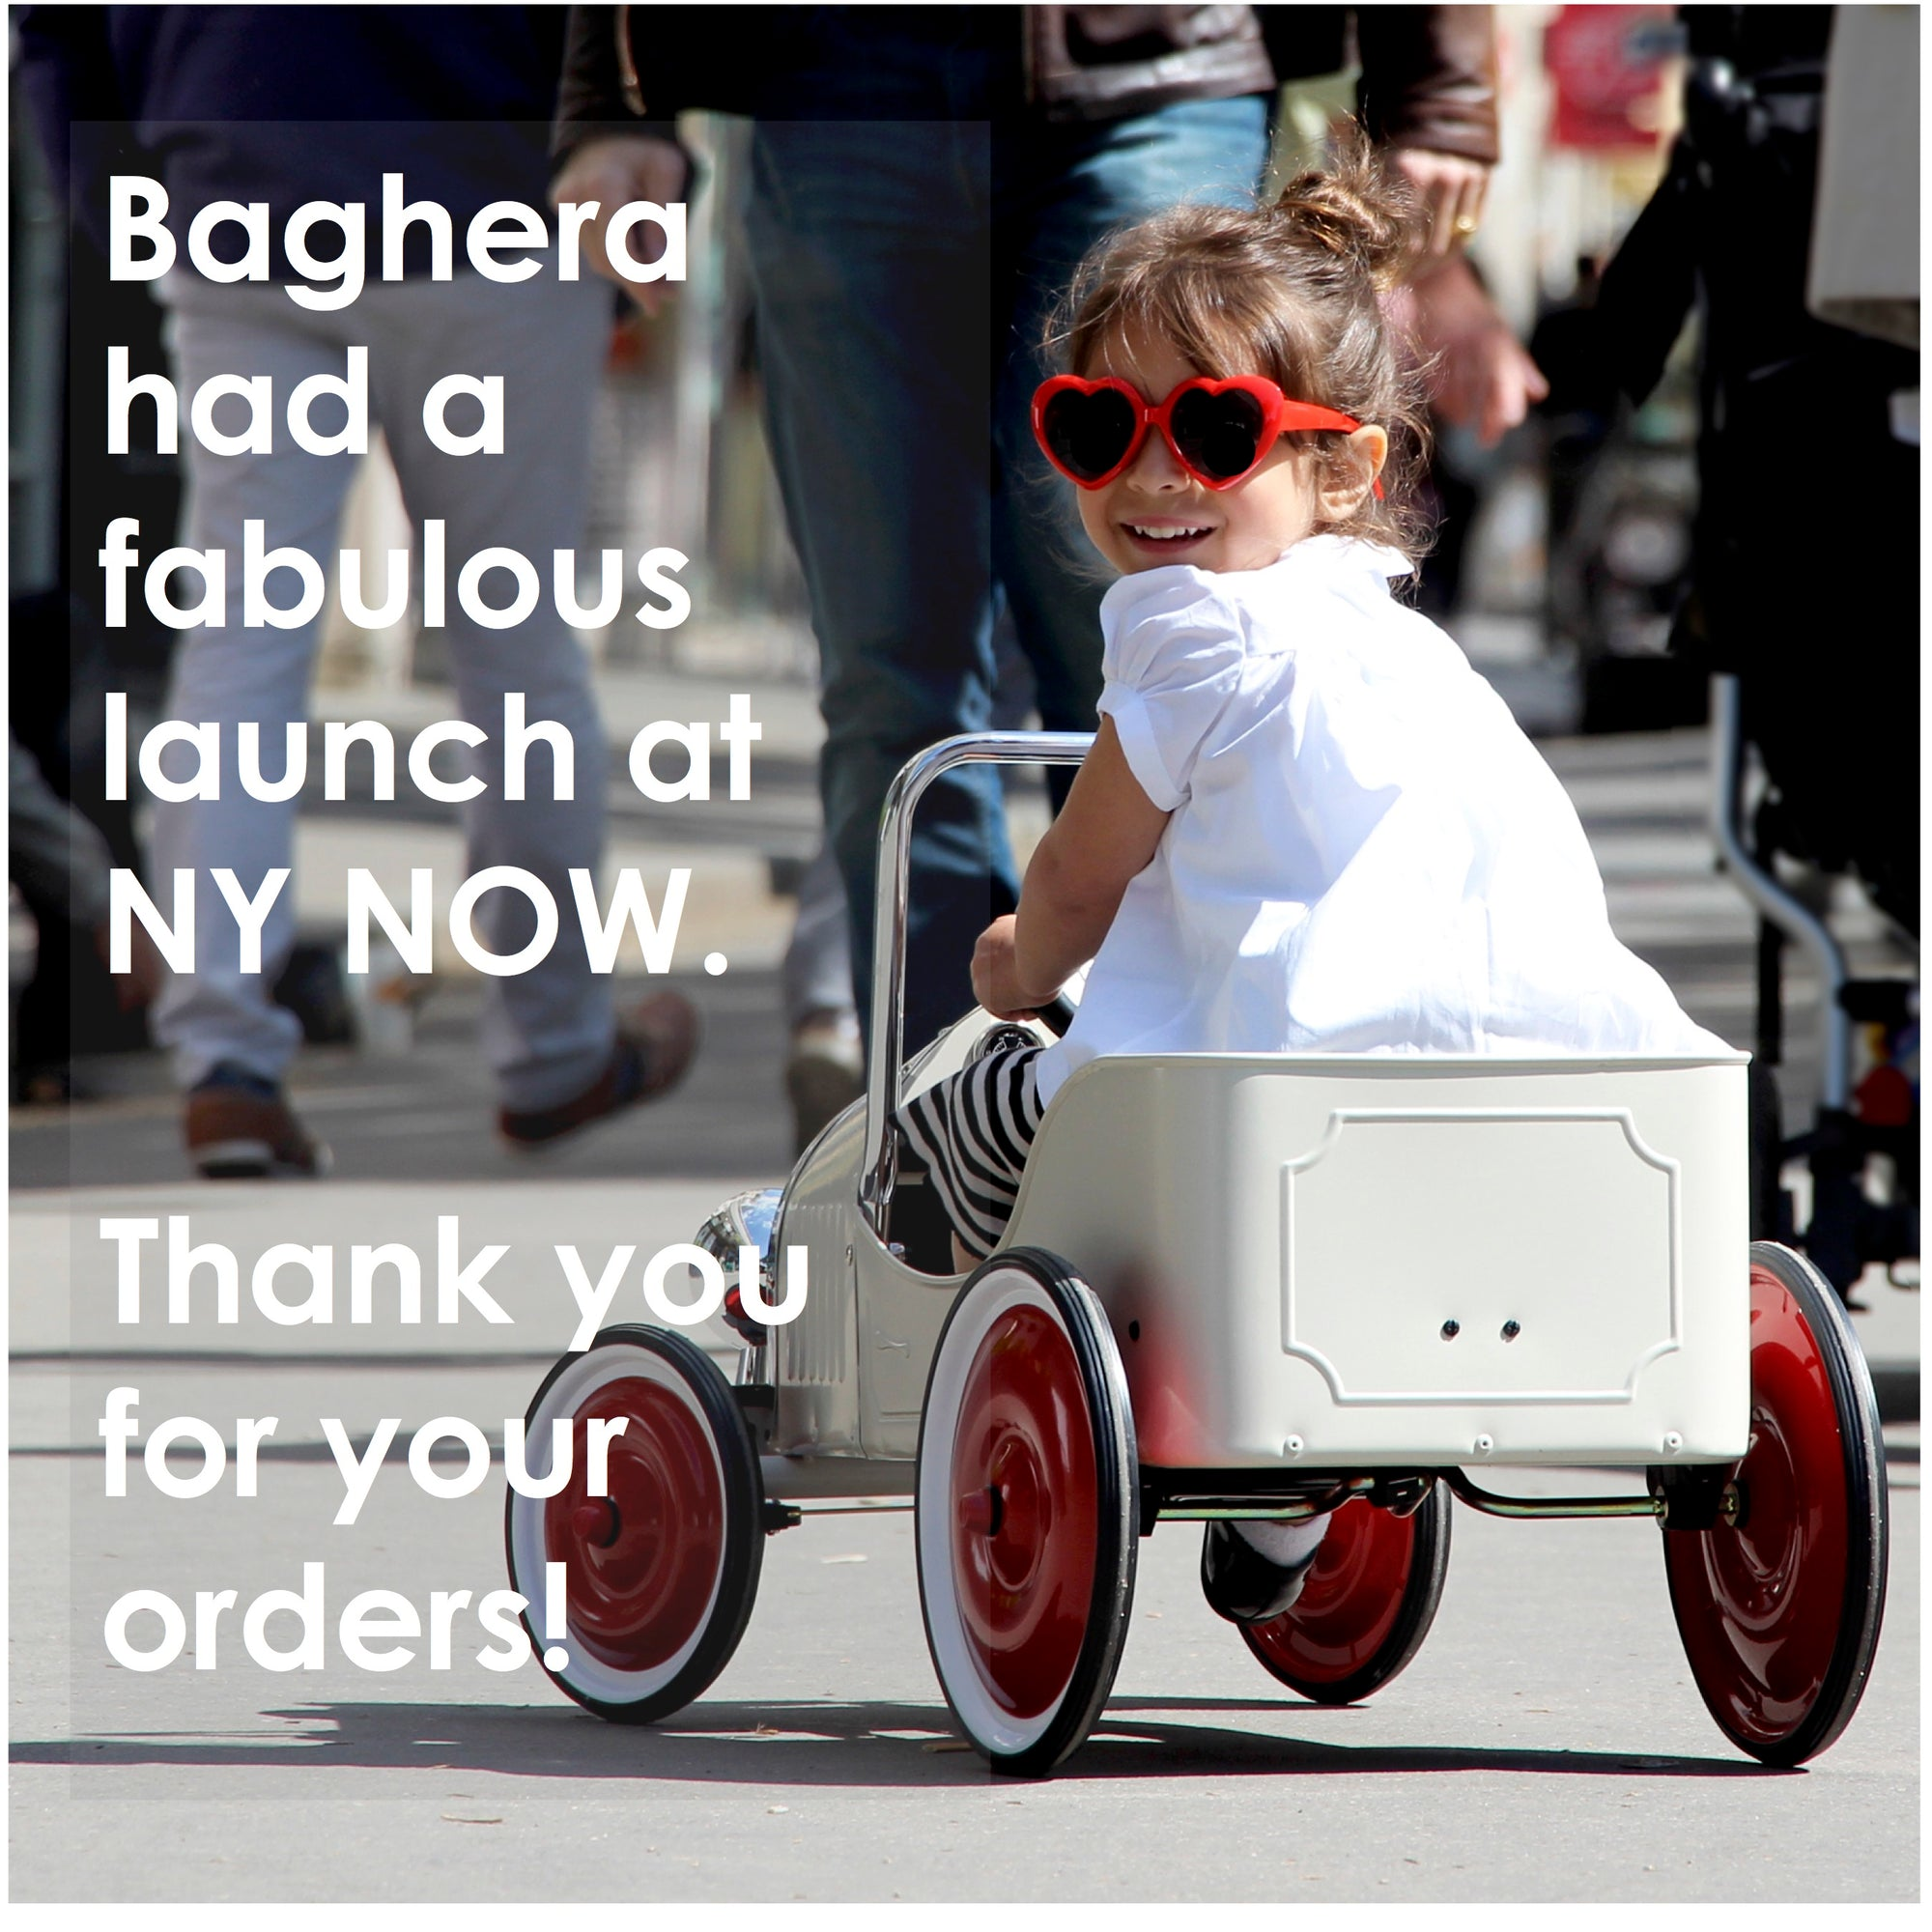 Baghera: Pre-Order for the Holidays!